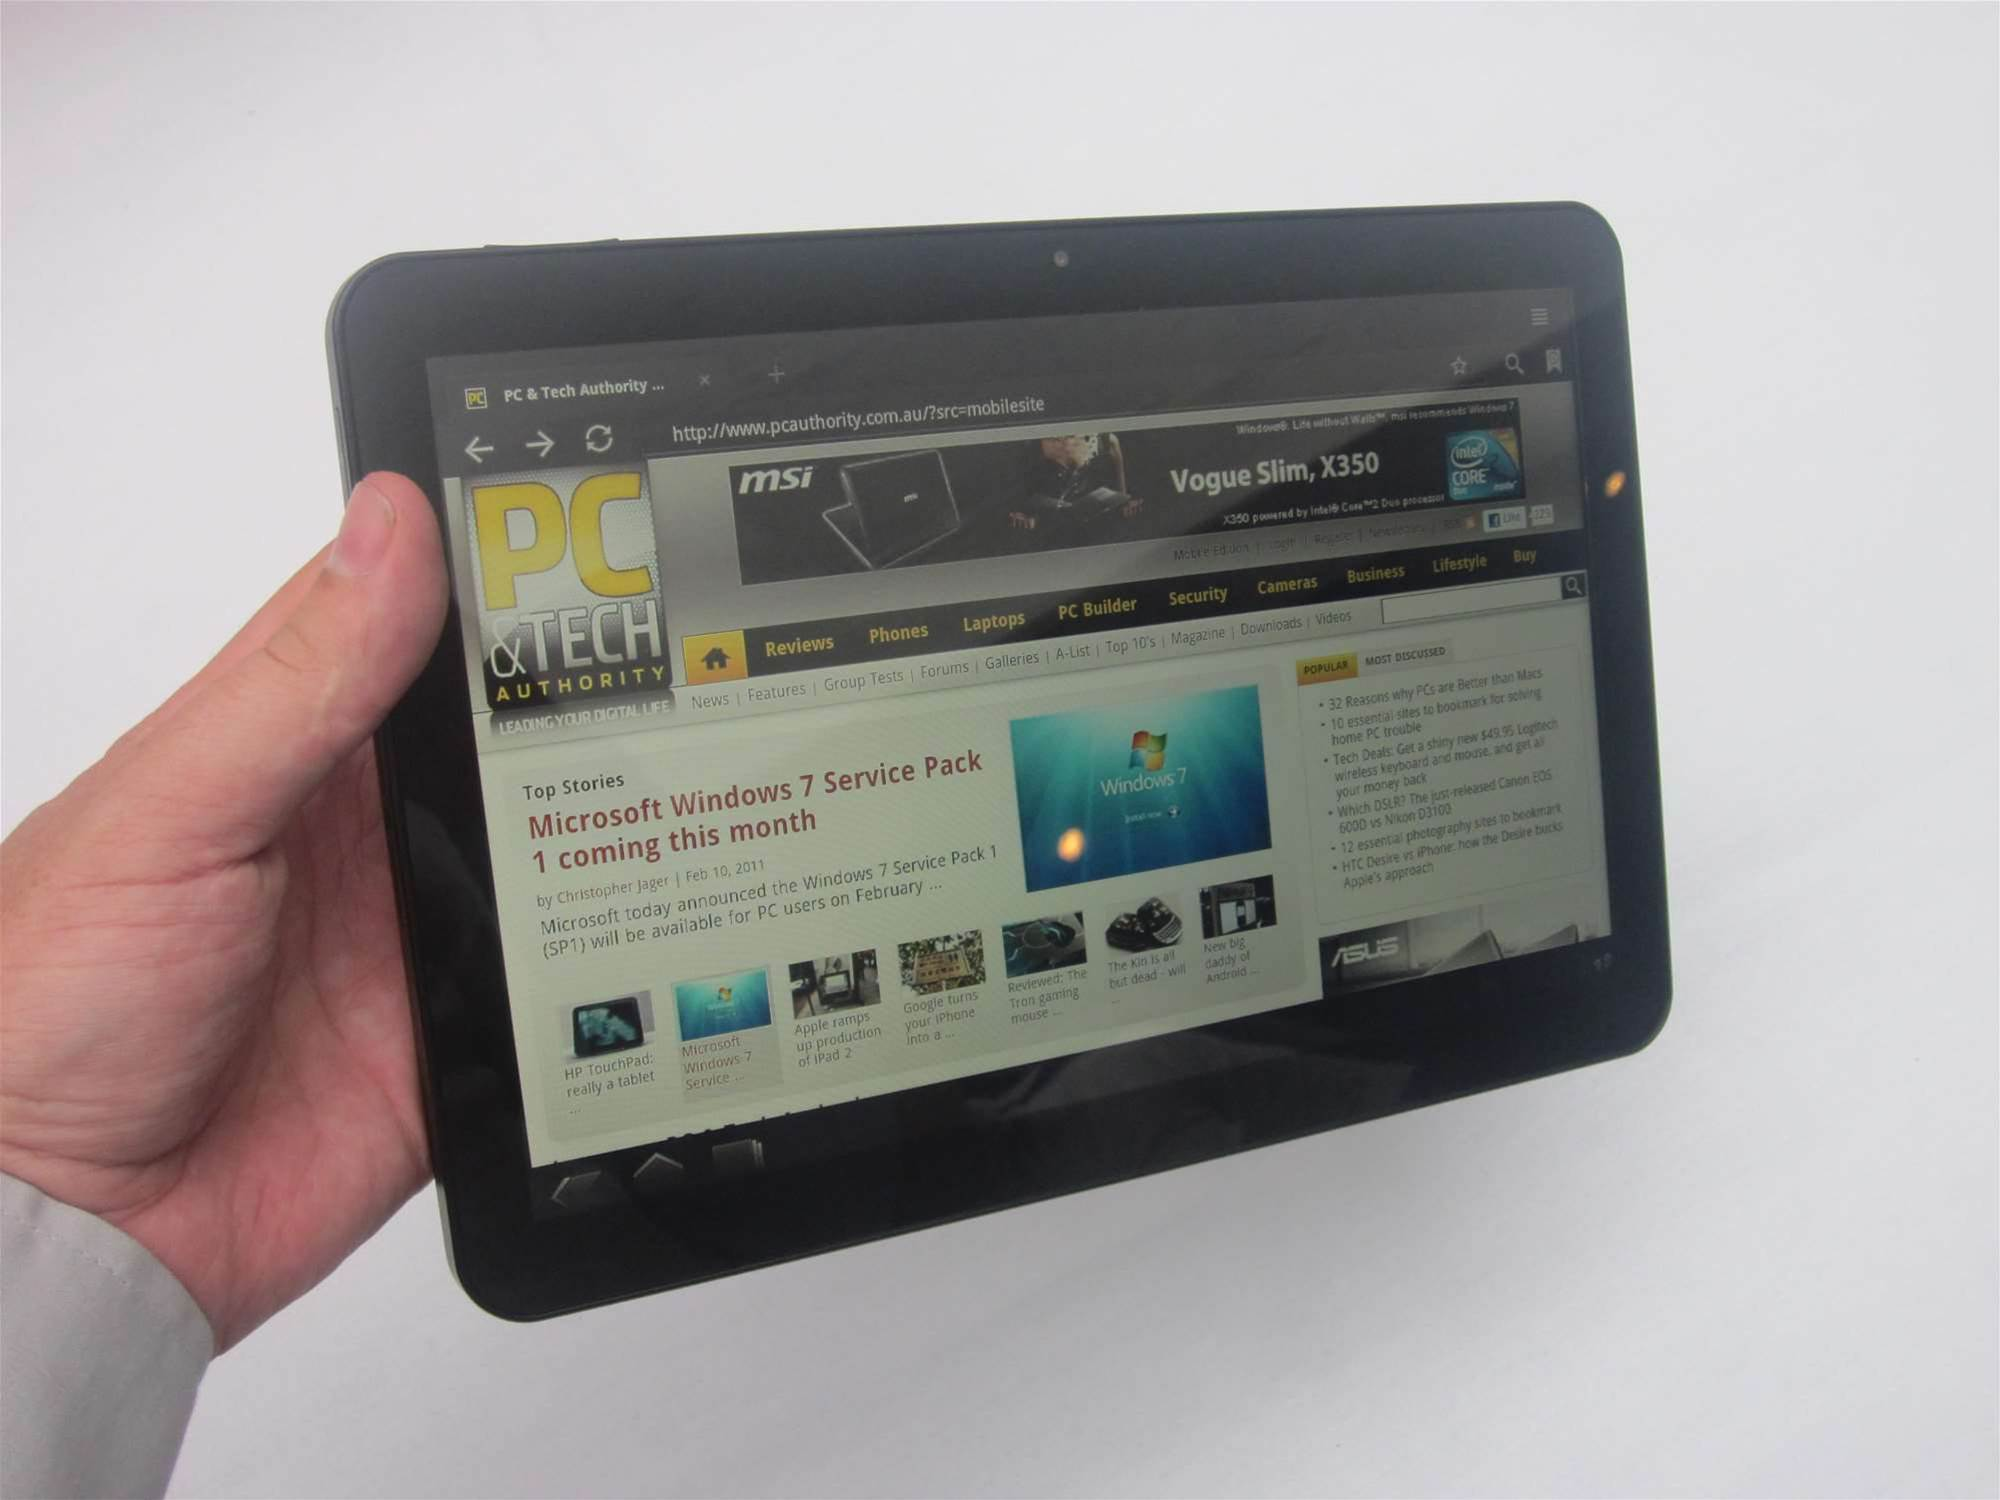 Samsung Australia today unveiled its two 'hero' products for 2011: the Samsung Galaxy Tab 10.1 and Samsung Galaxy S II. We had a play around with both products at the official launch event. Read on to discover our verdict. (Pictured: Samsung Galaxy Tab 10.1)